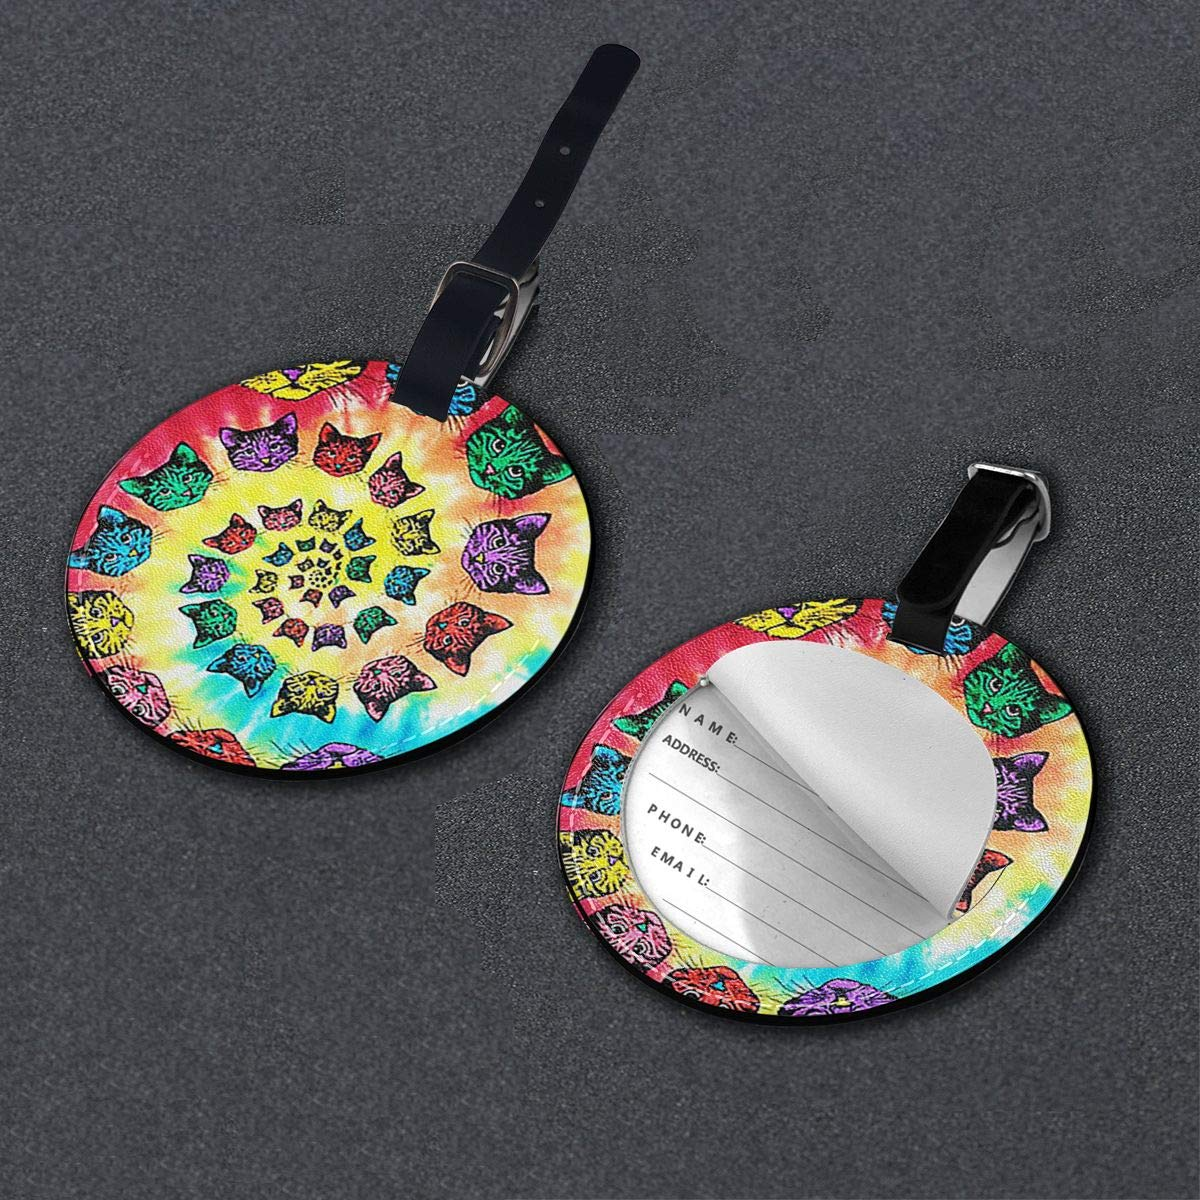 Free-2 Spiral Cats Tie-Dye Luggage Tag 3D Print Leather Travel Bag ID Card